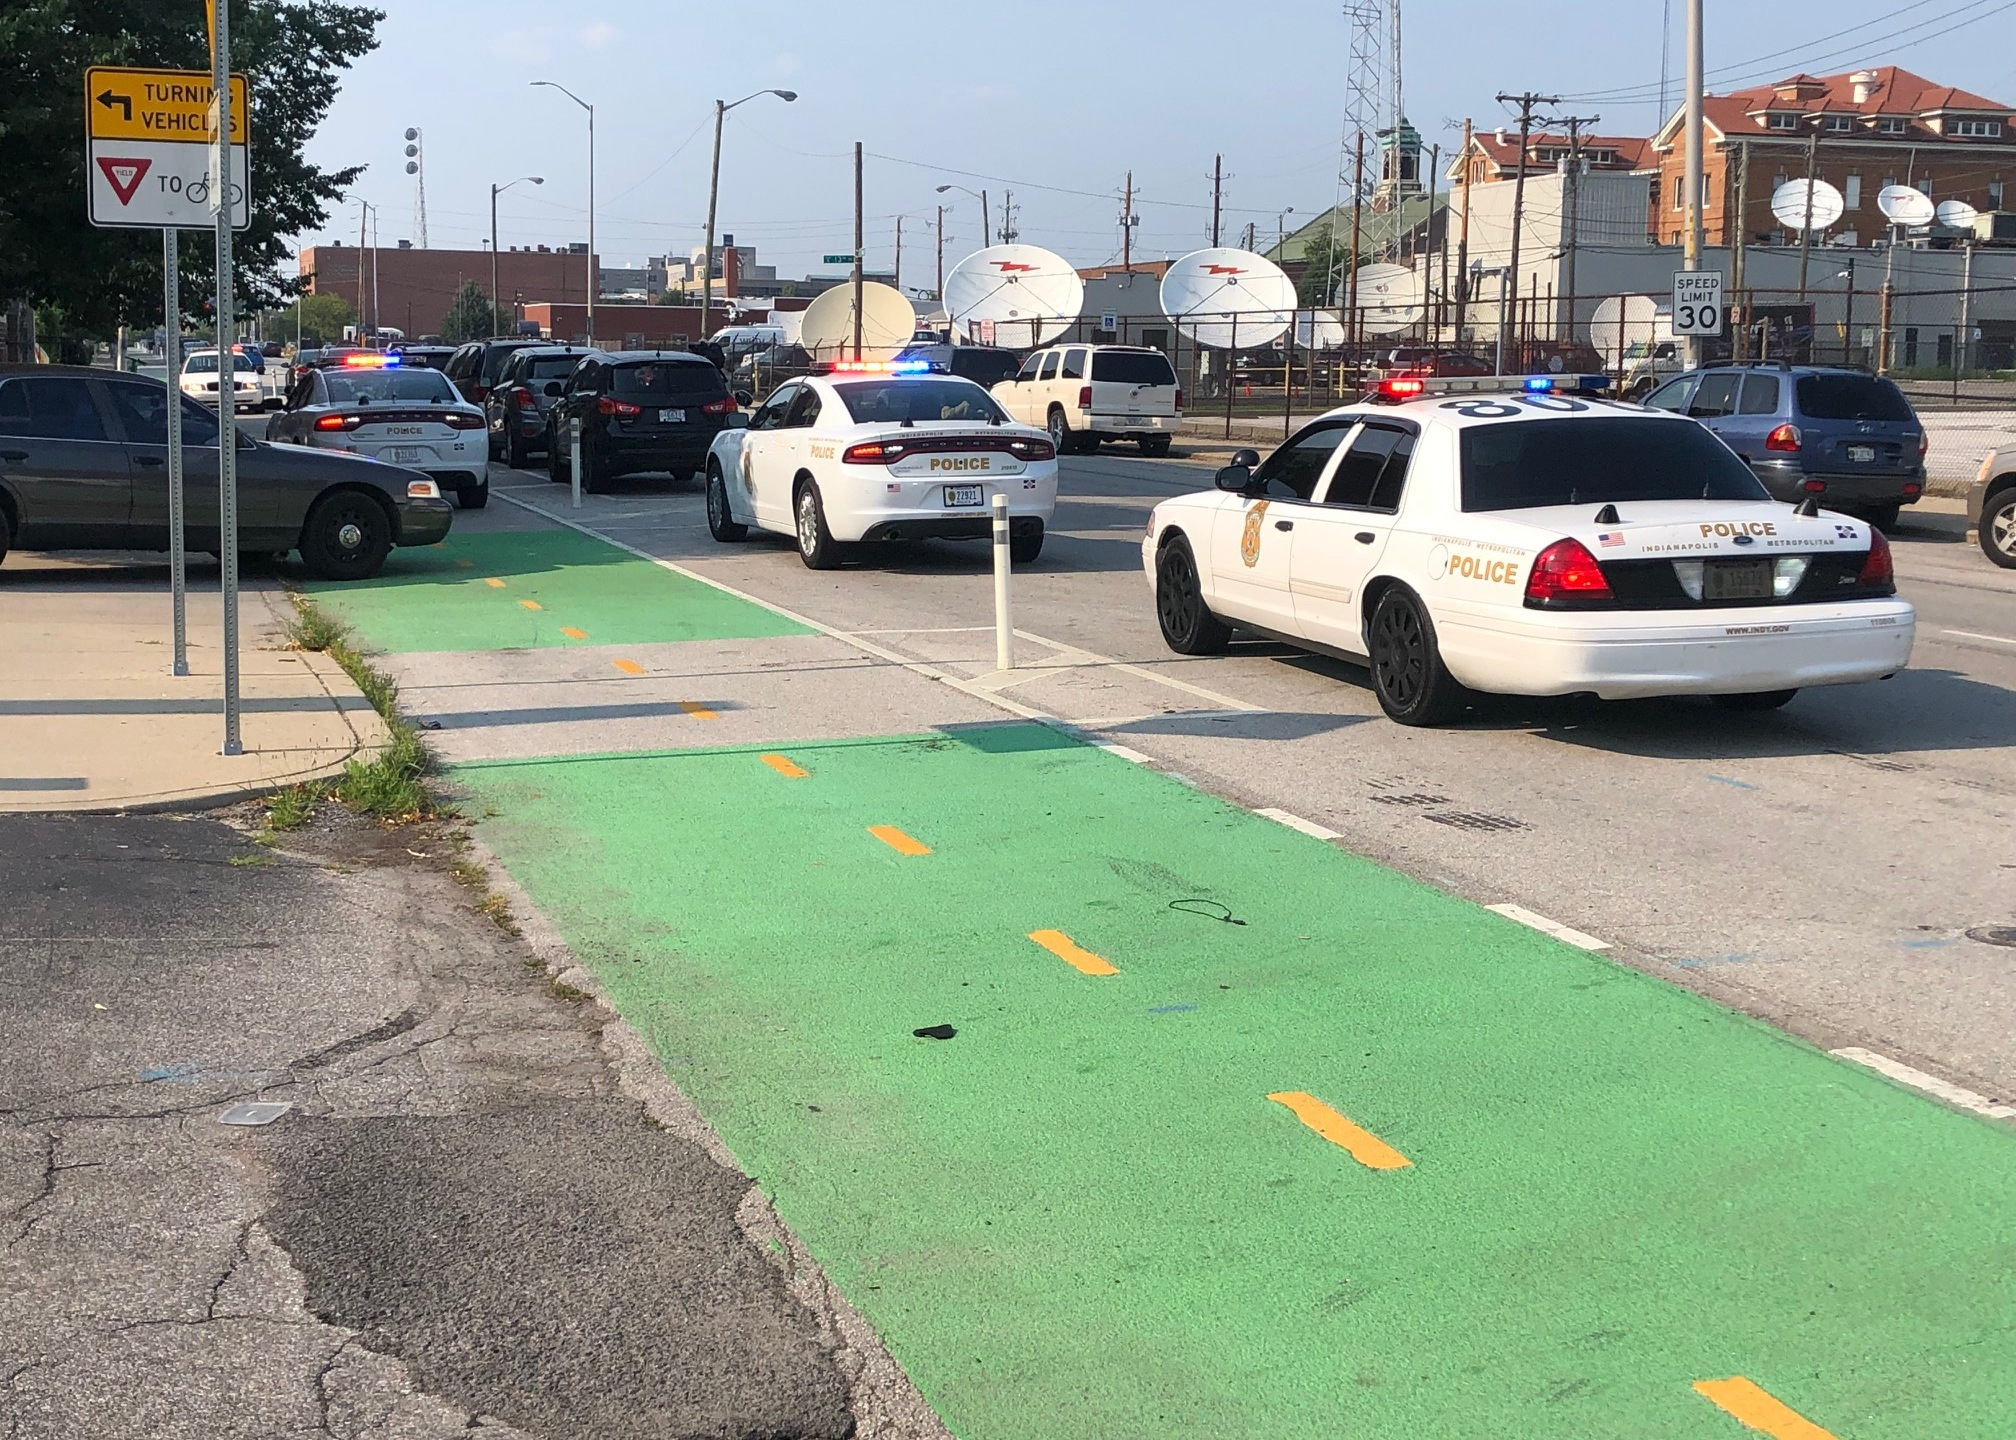 2 wounded in double stabbing on Indy's near north side